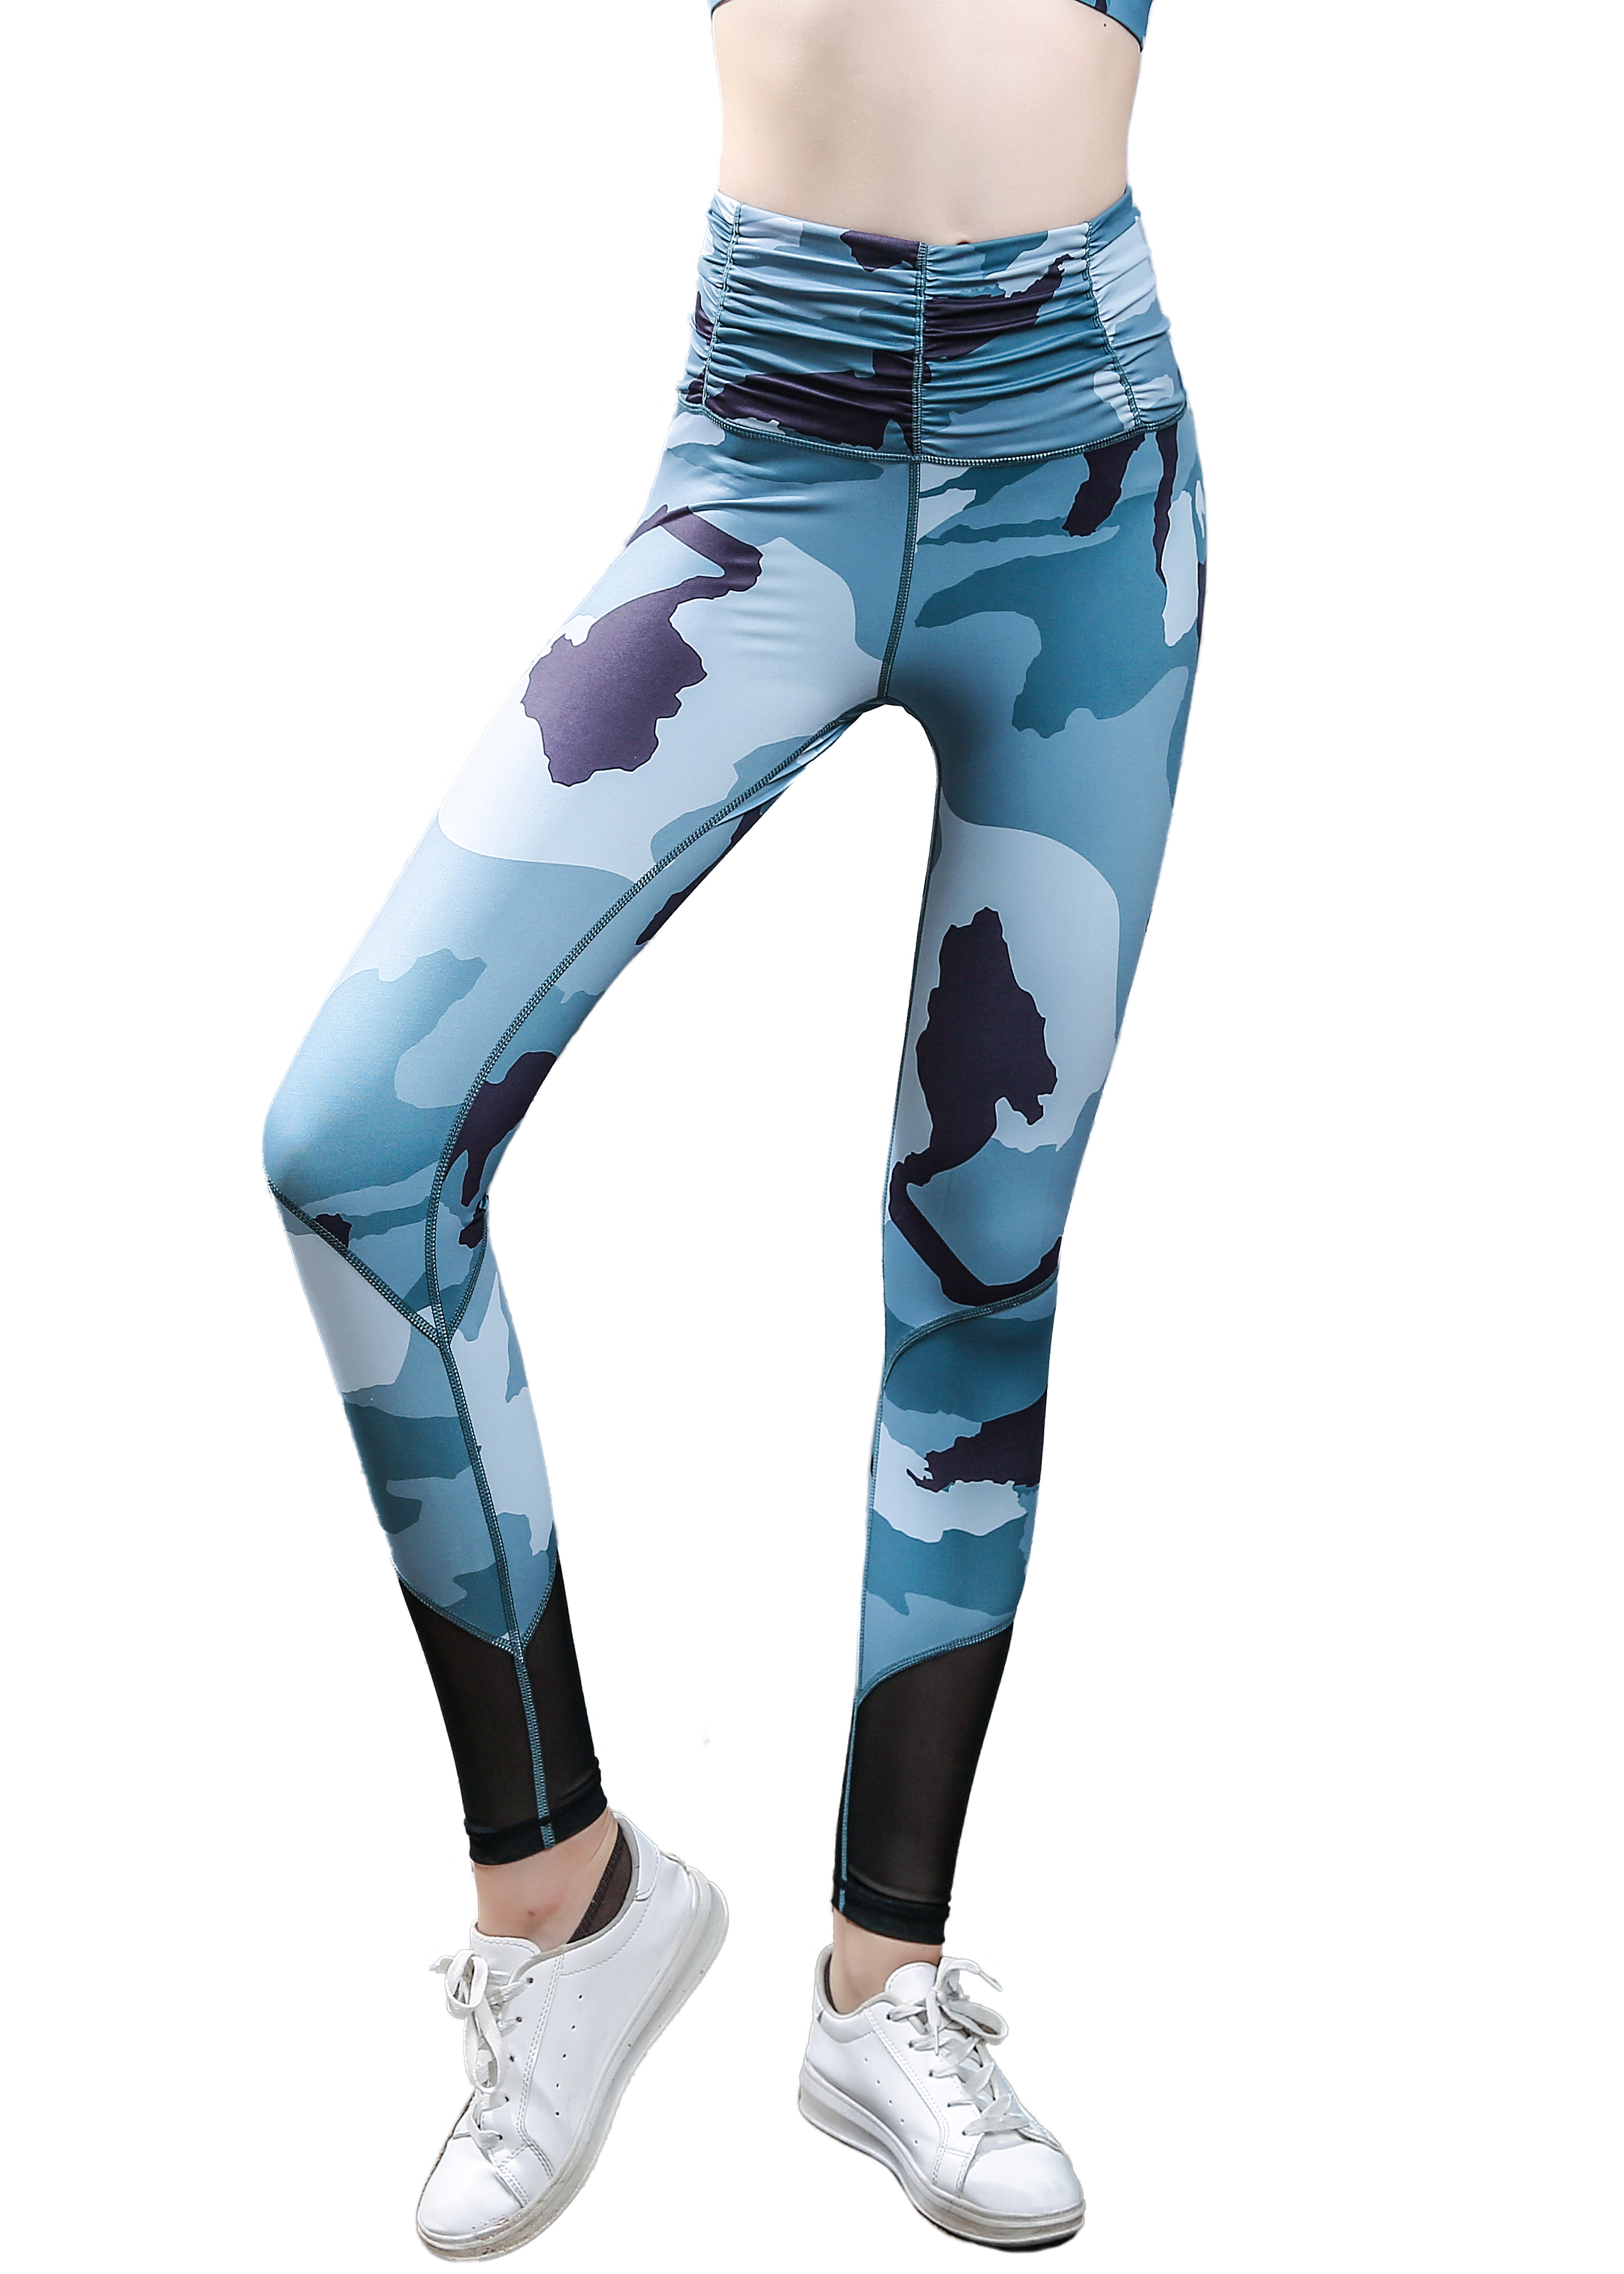 Girls or Junior Women's Camouflage print sheer mesh net panel insert Compression Tights Active Stretch Fitness Yoga Pants Running and Jogging Leggings